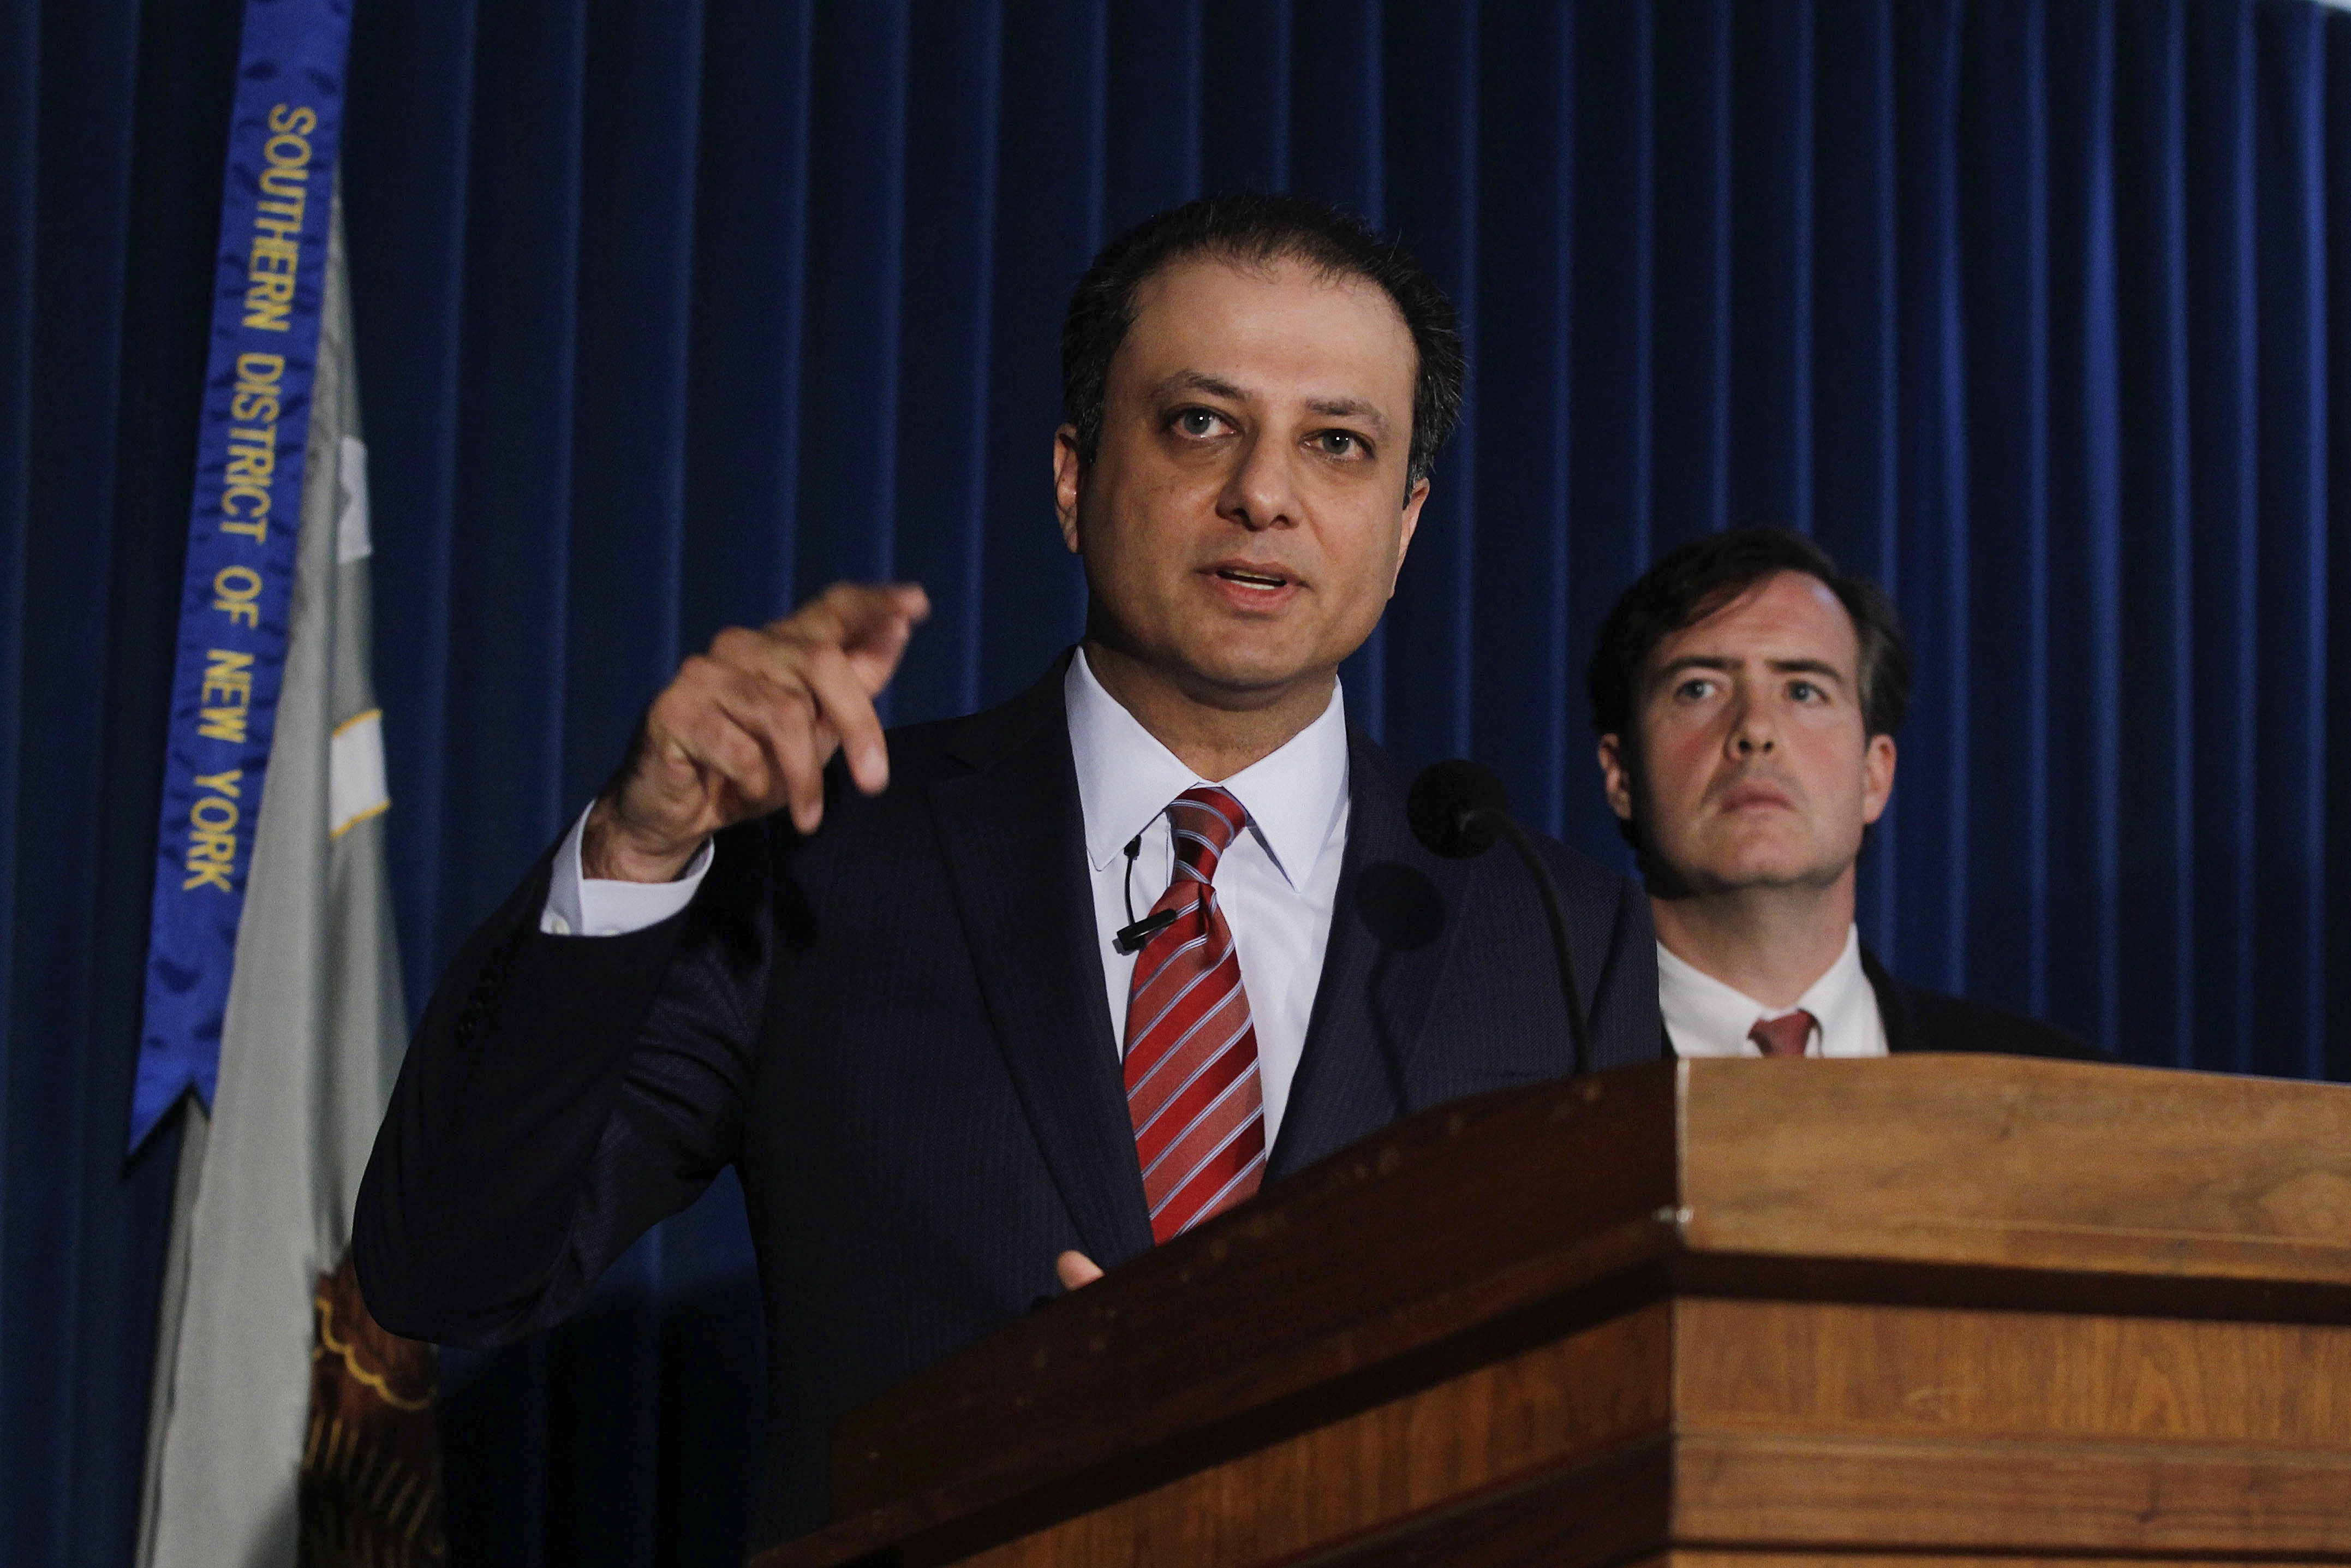 Preet Bharara, the U.S. Attorney for the Southern District of New York, talks about the Moreland Commission Wednesday.